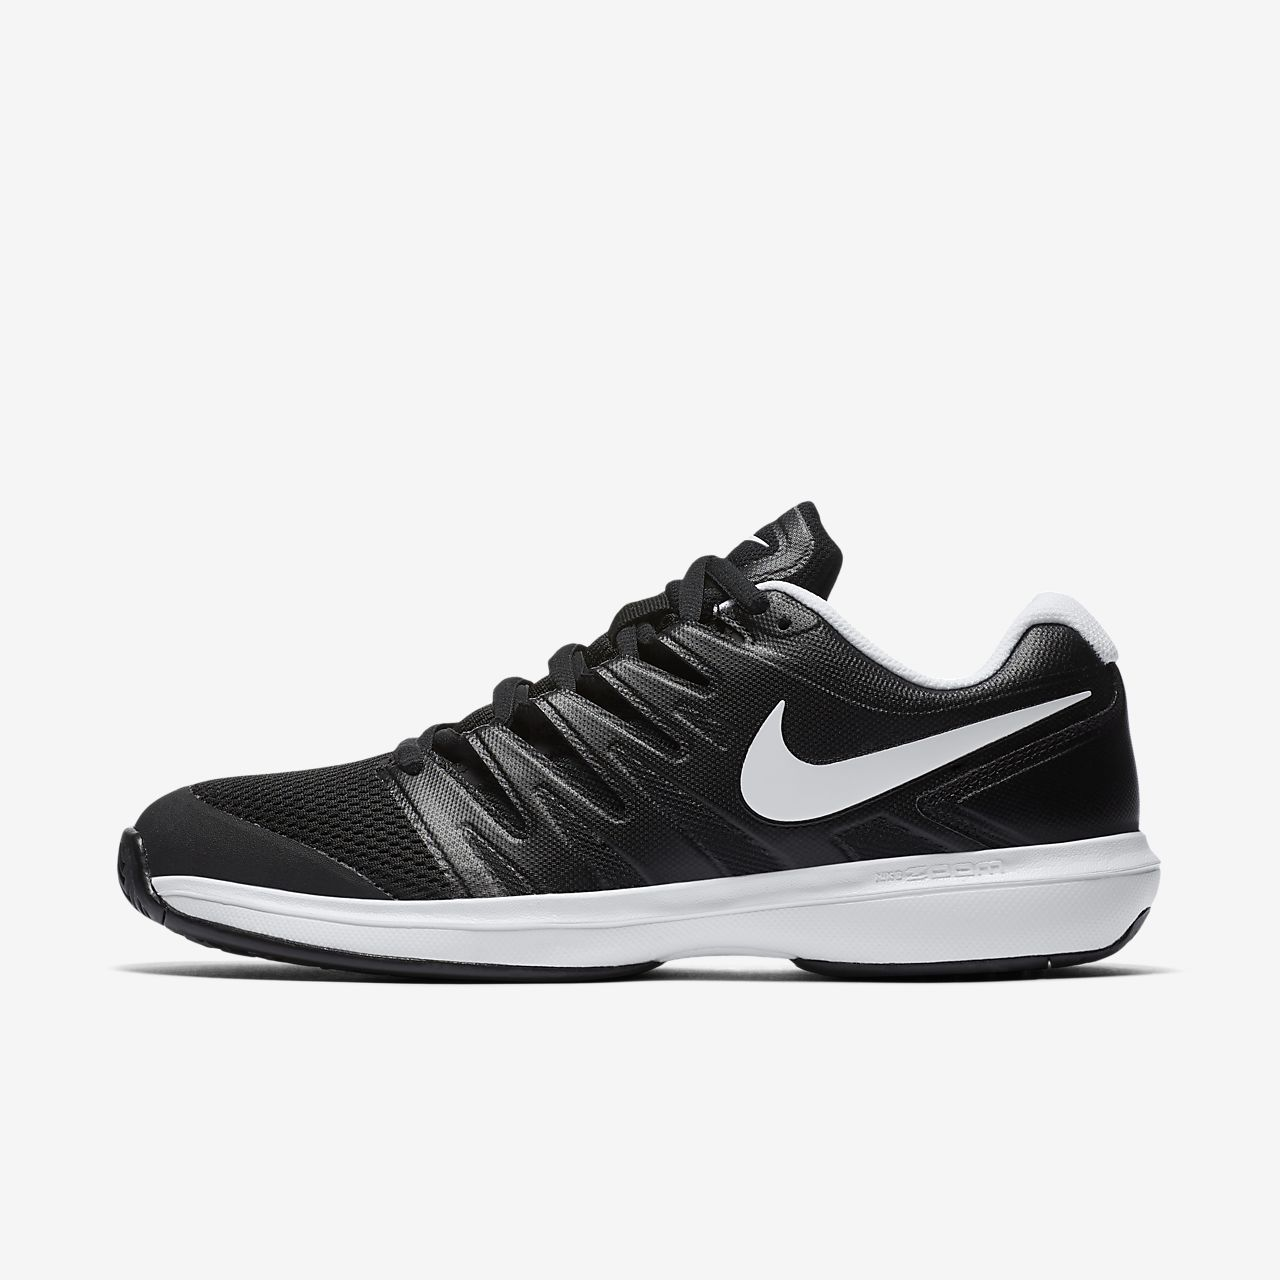 a4edc086a6ad4 NikeCourt Air Zoom Prestige Men s Hard Court Tennis Shoe. Nike.com DK